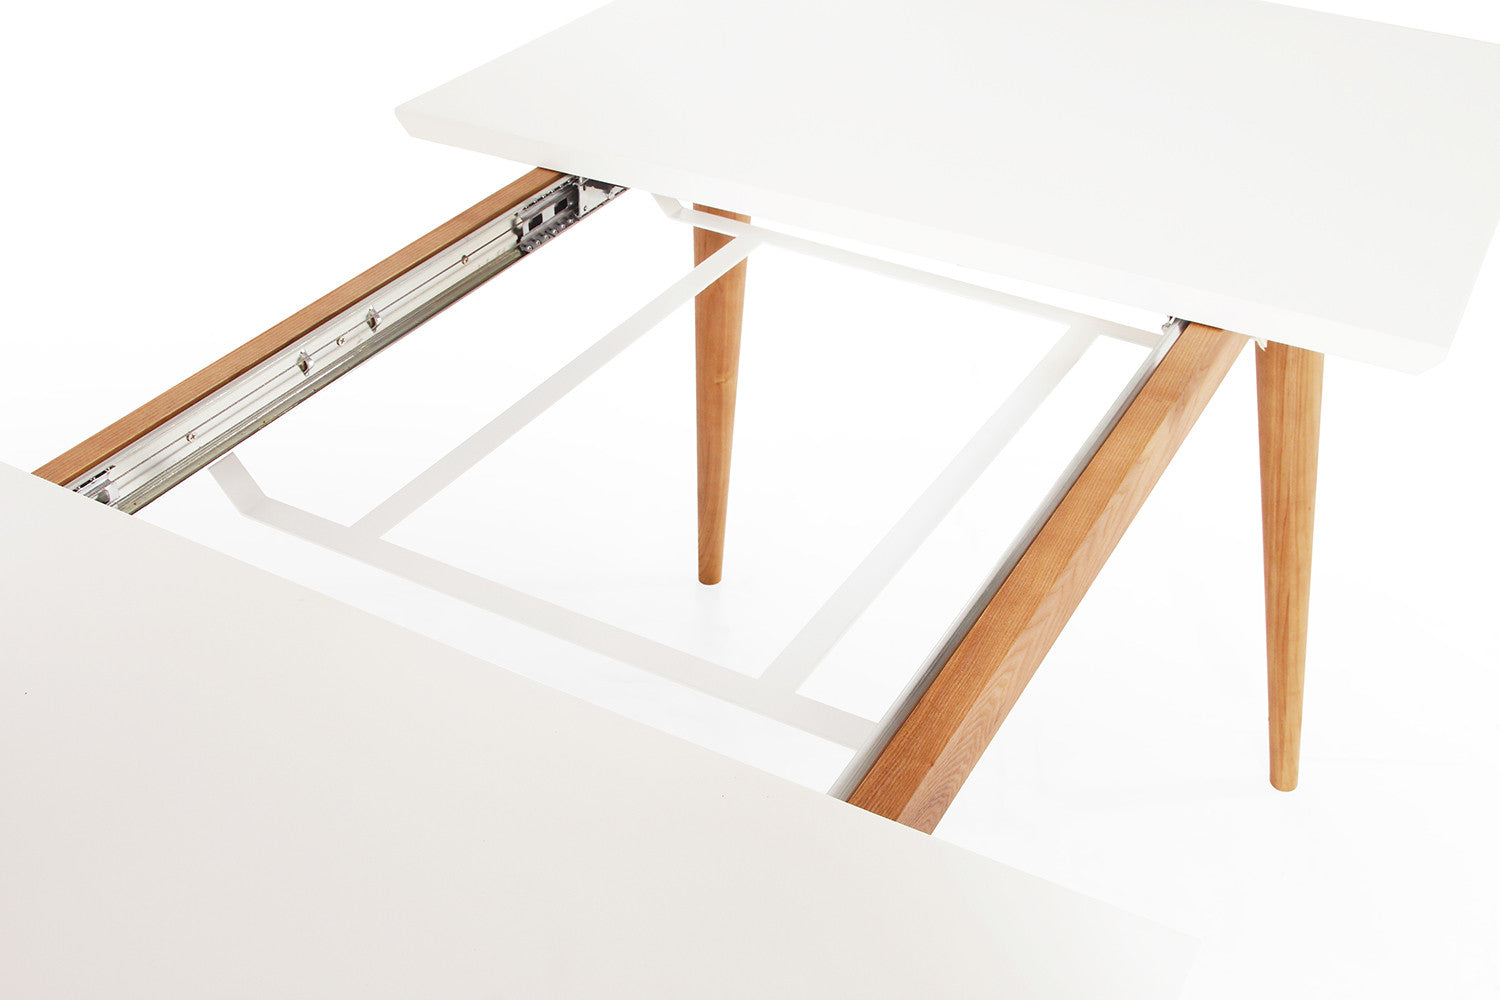 Table de salle manger extensible scandinave wyna dewarens - Table a manger extensible bois ...